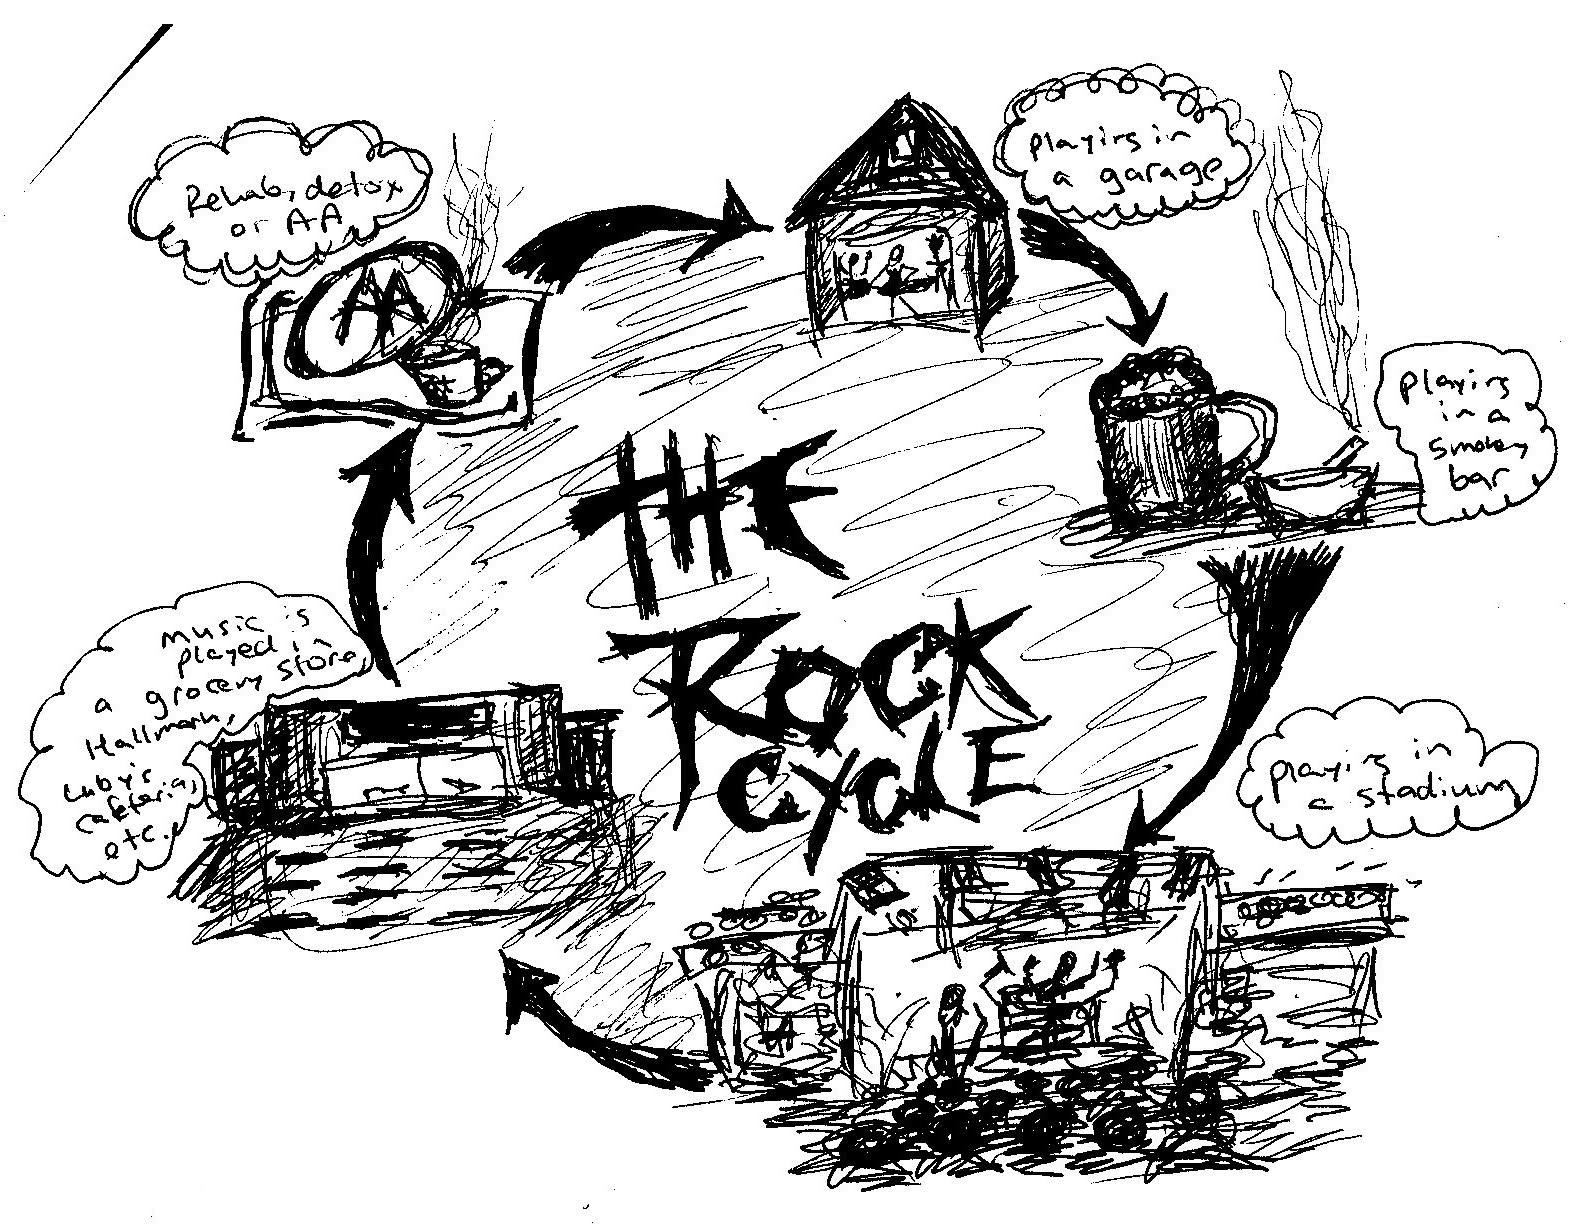 Rock Cycle Drawing at GetDrawings.com | Free for personal use Rock ...